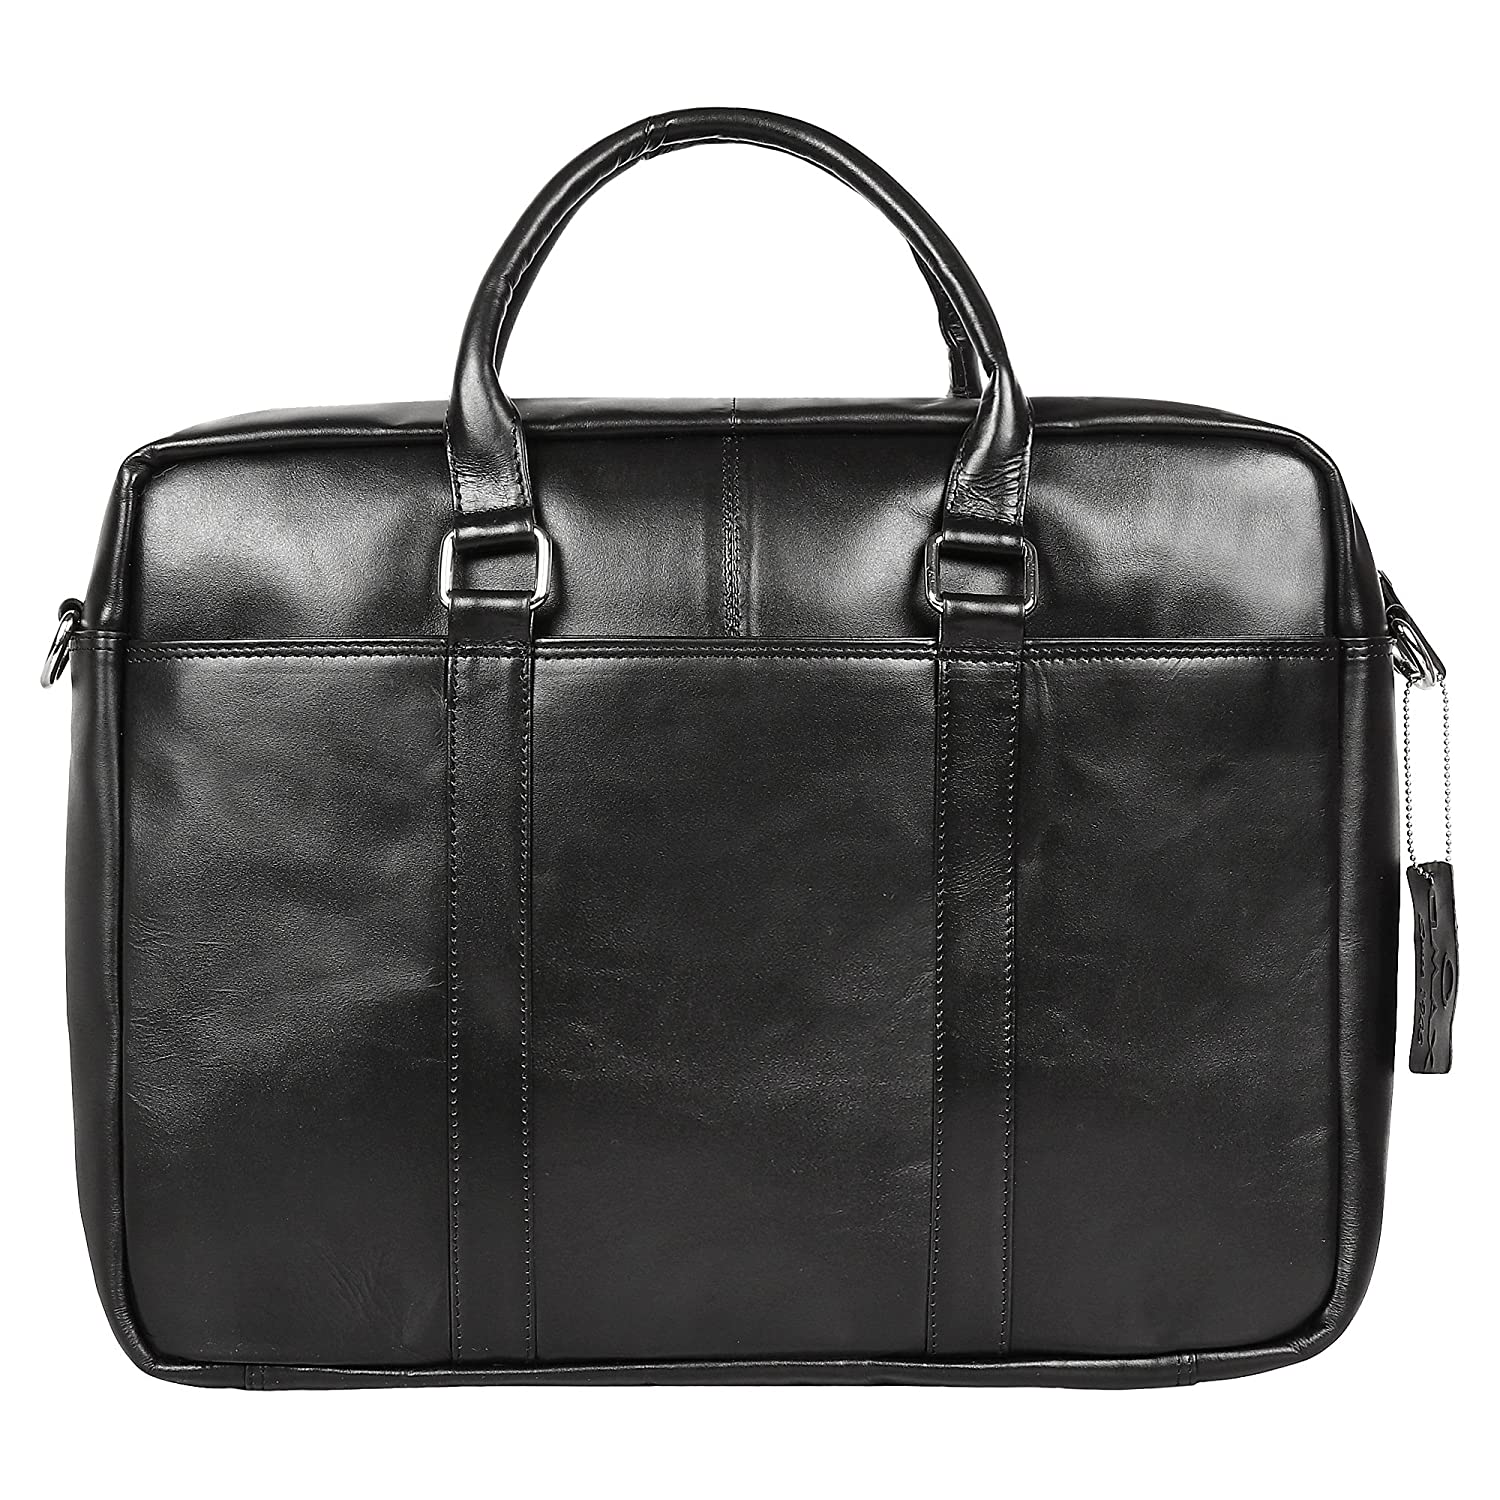 478787a520230 OMAX Men s Single Compartment Black Leather Laptop Bag  Amazon.in  Bags